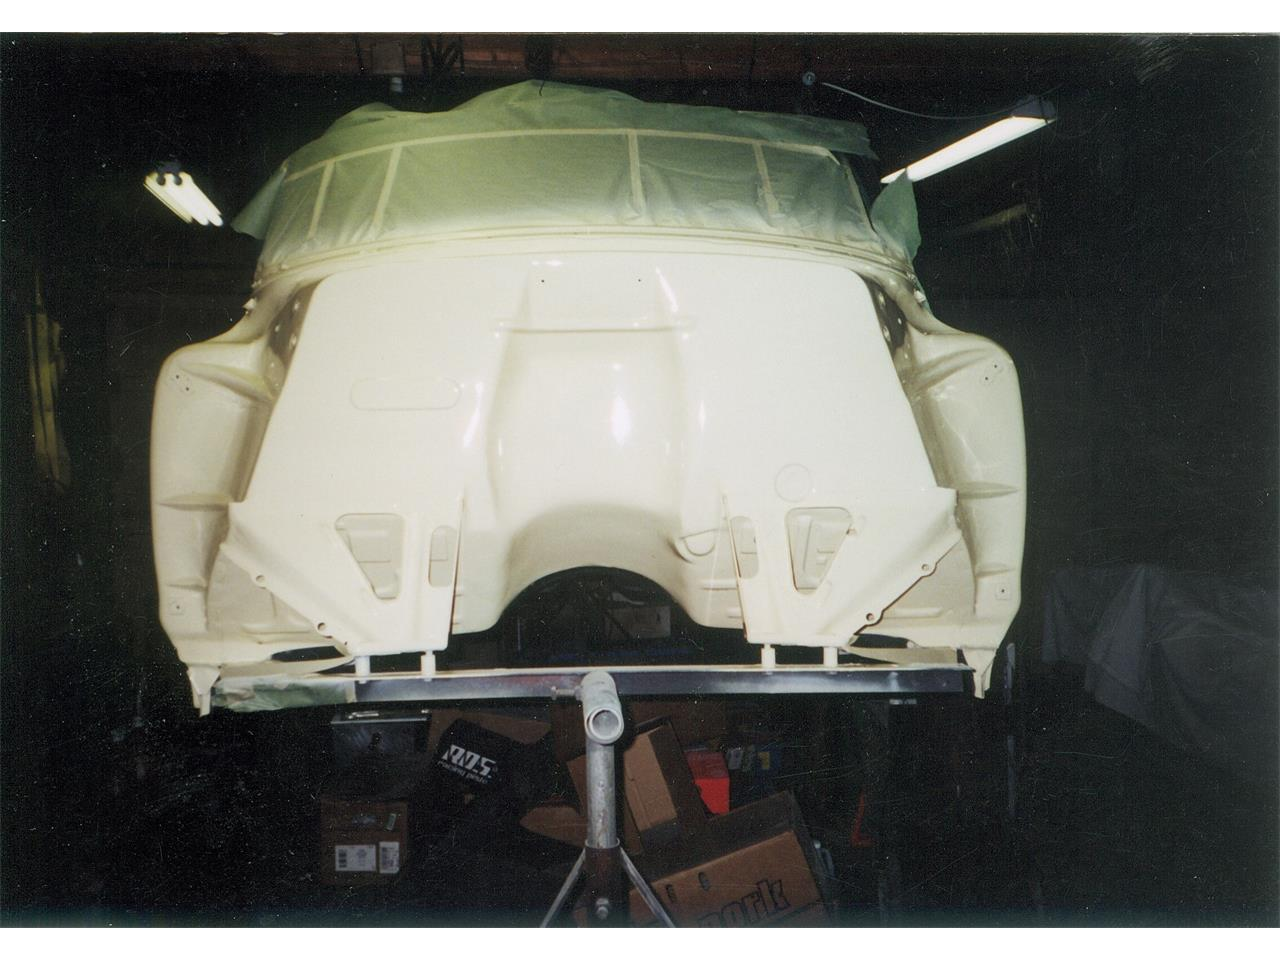 Large Picture of 1953 Bel Air located in Washington - $68,000.00 Offered by a Private Seller - BR24